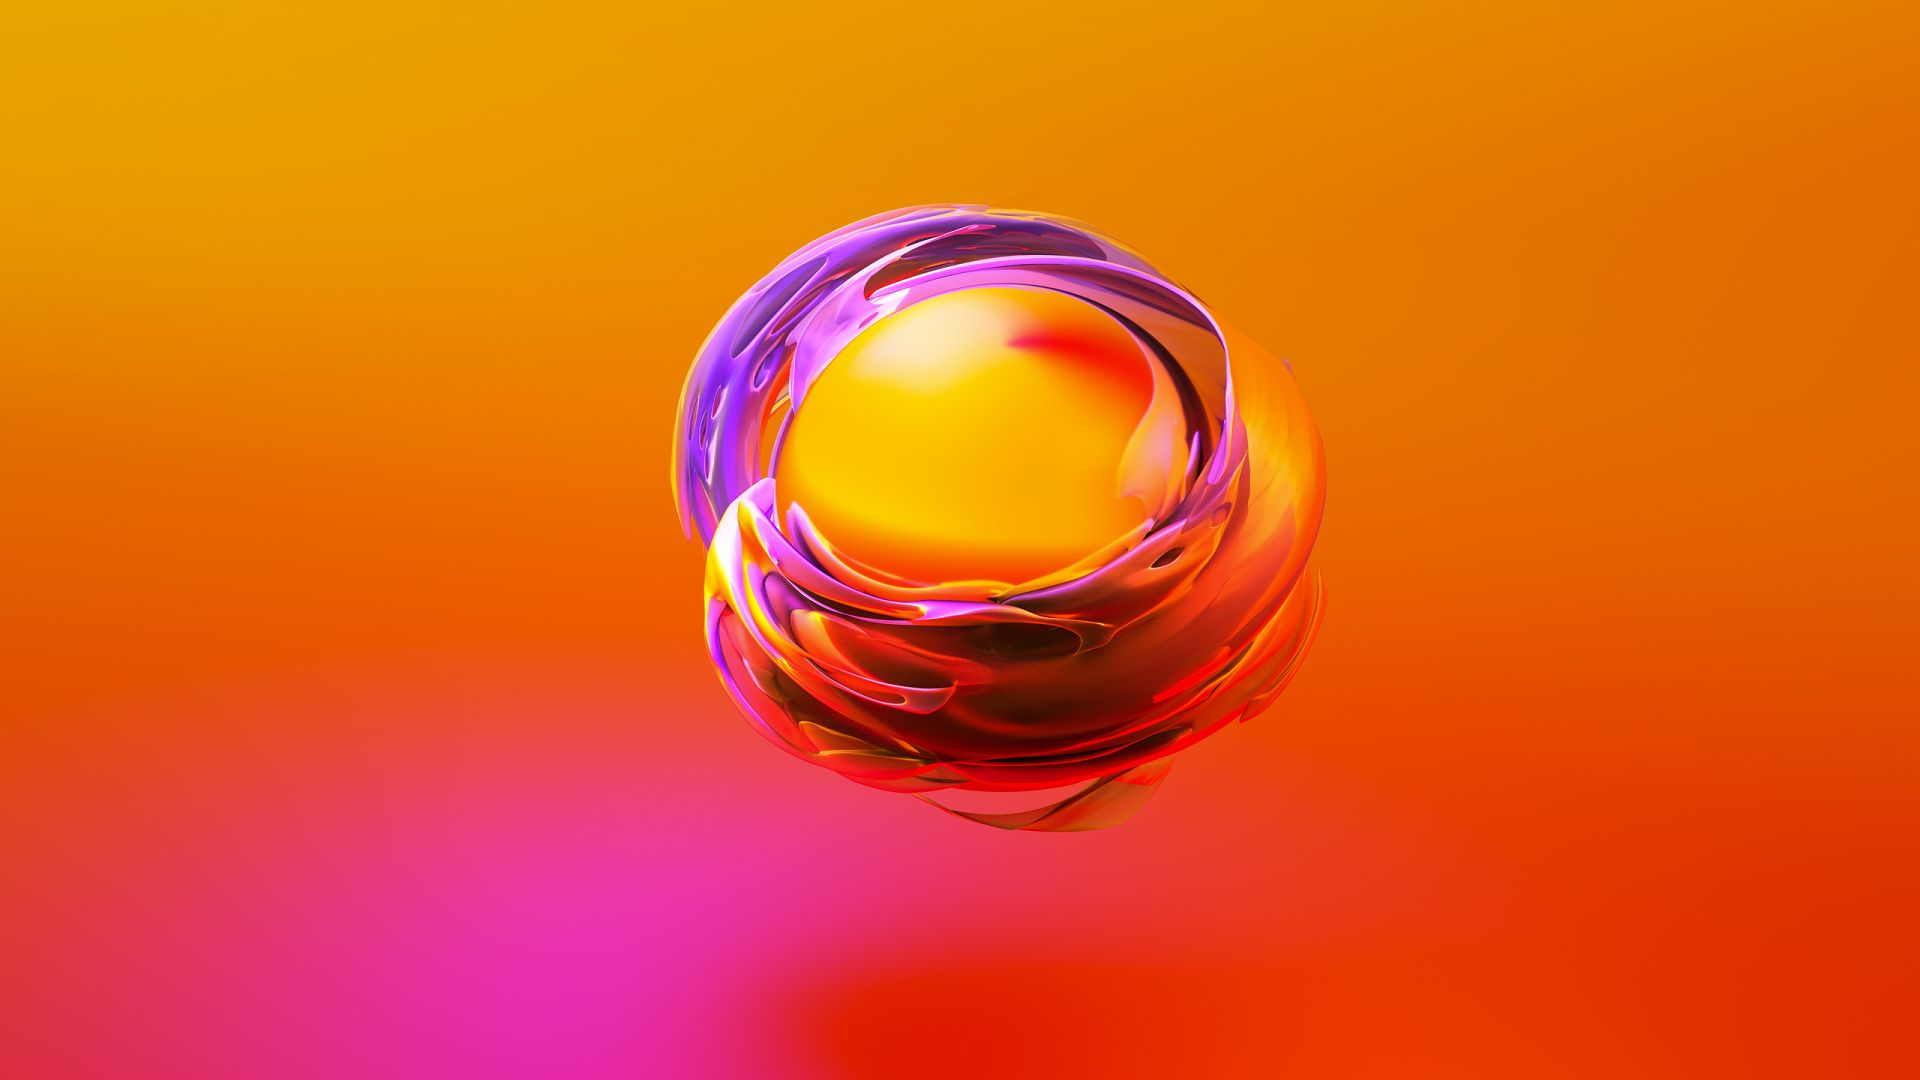 sphere, 3D, orange, yellow, HD (horizontal)